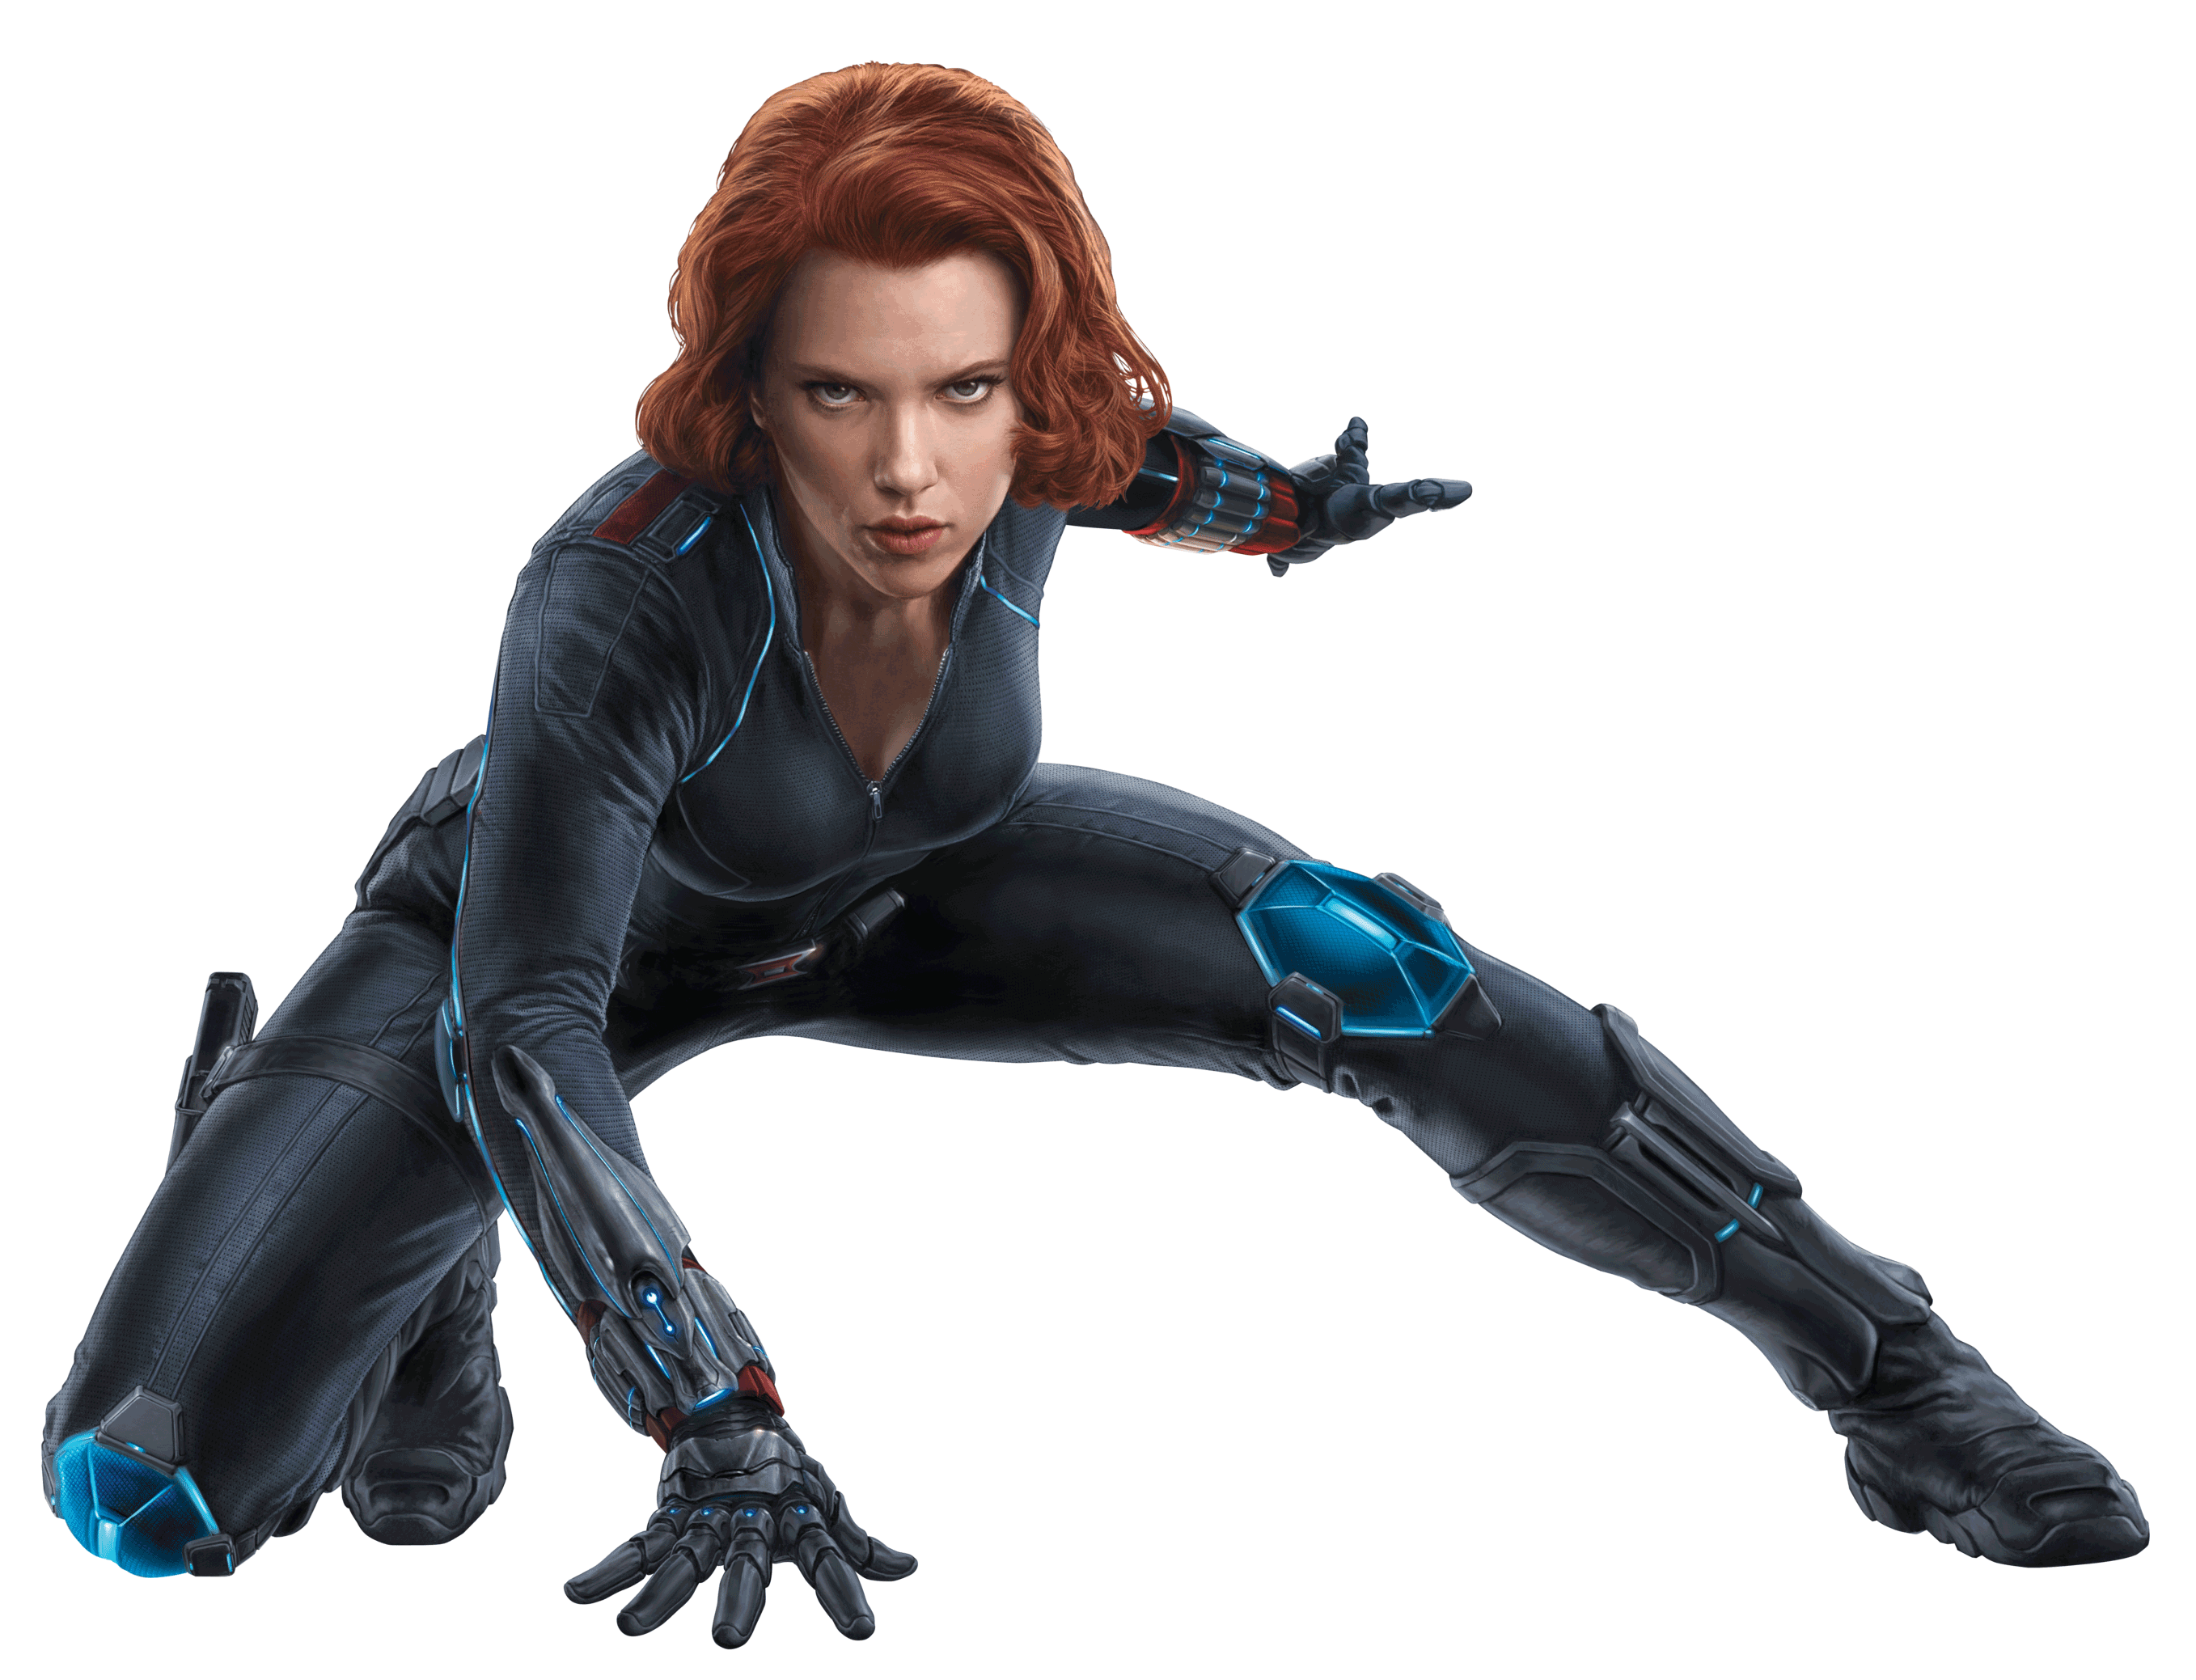 Hd Marvel Png - Black Widow Marvel PNG Images